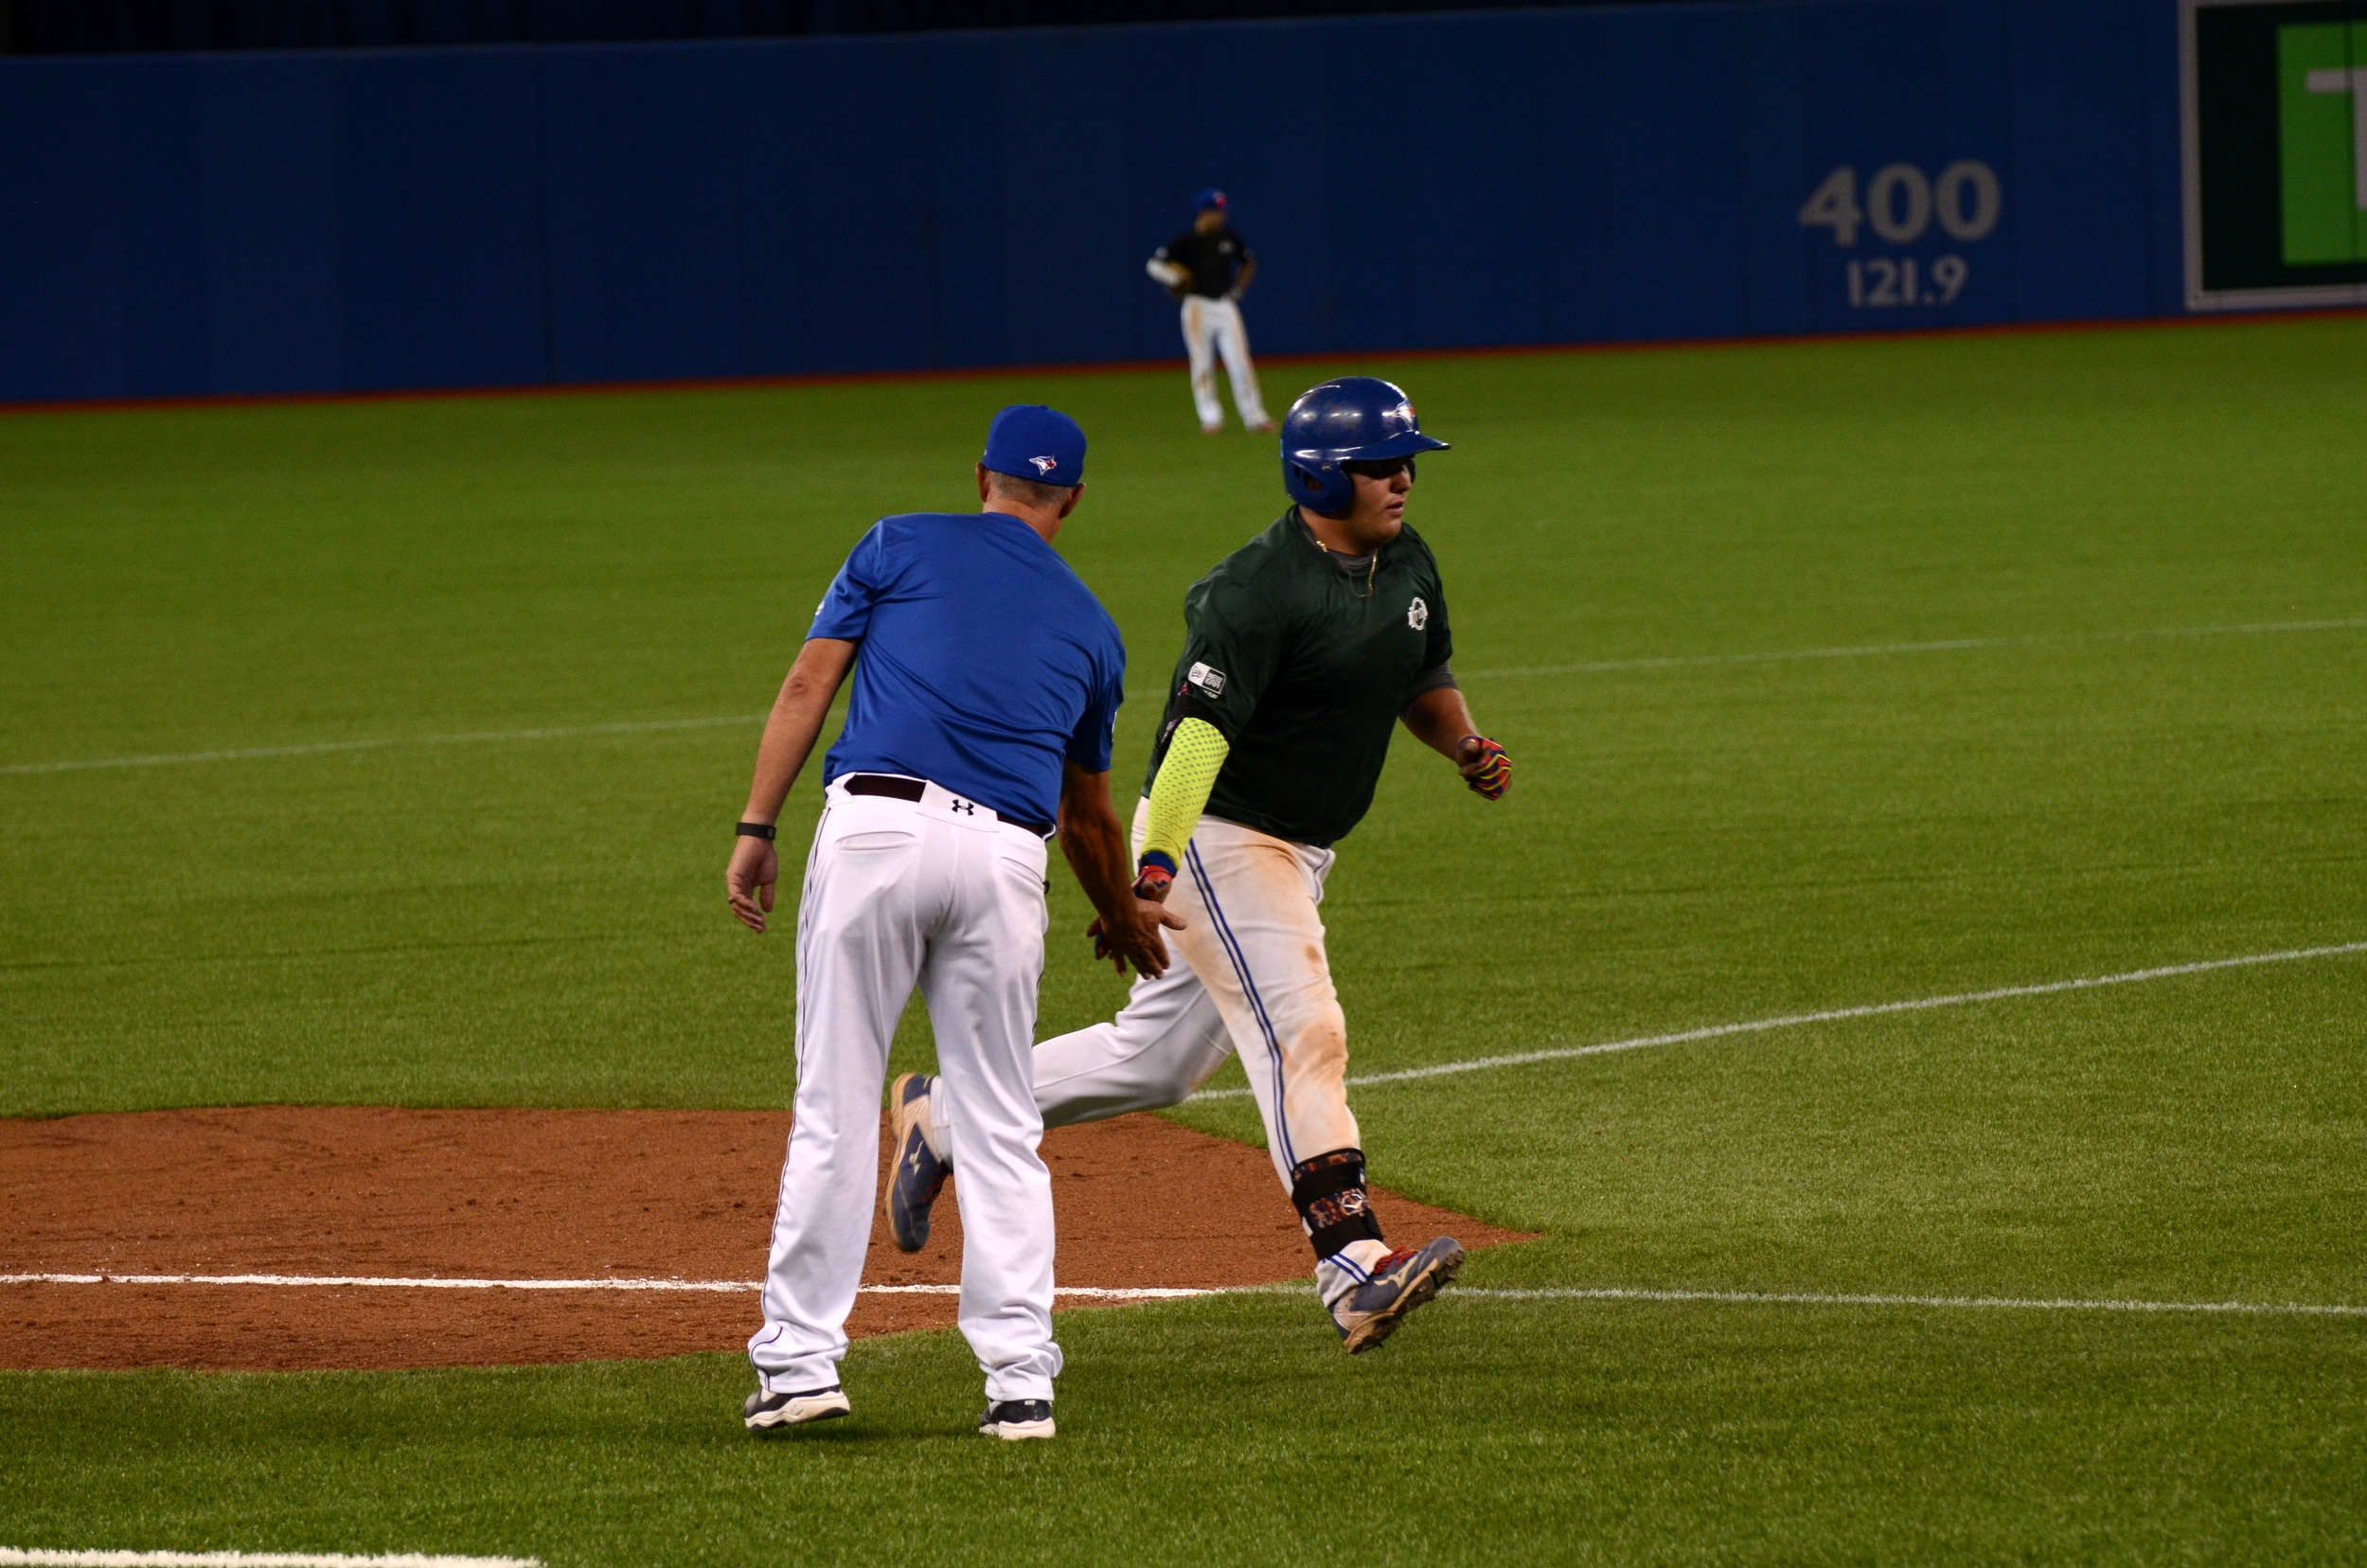 Ryan Rijo (North York, Ont.) of the Ontario Blue Jays rounds third on his game-winning two-run homer against Ontario Black in the sixth inning. Photo Credit: Jonathan Soveta